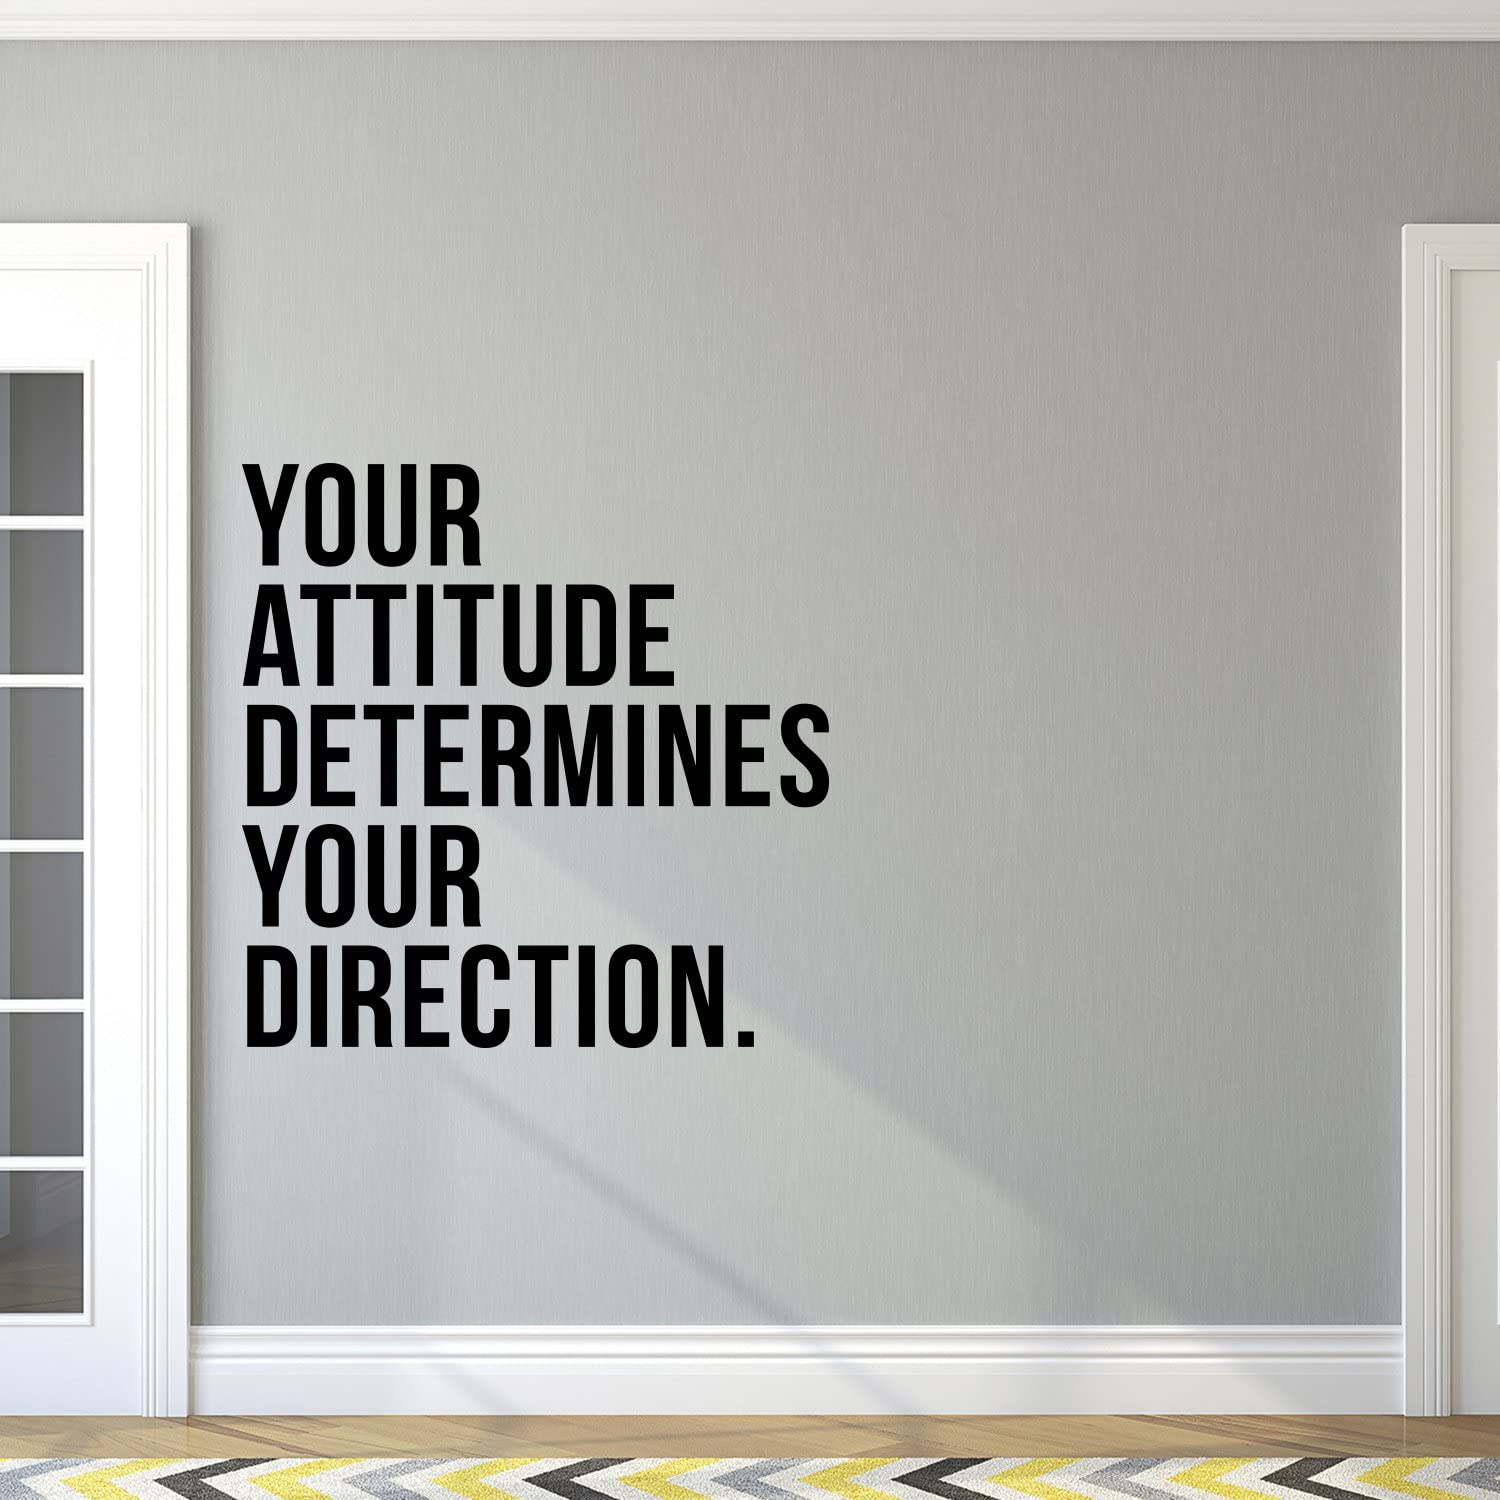 """Vinyl Art Wall Decal - Your Attitude Determines Your Direction - 23"""" x 23"""" - Trendy Motivational Positive Quote Sticker for Living Room Kids Room Playroom Office Work Gym Fitness Decor (Black)"""